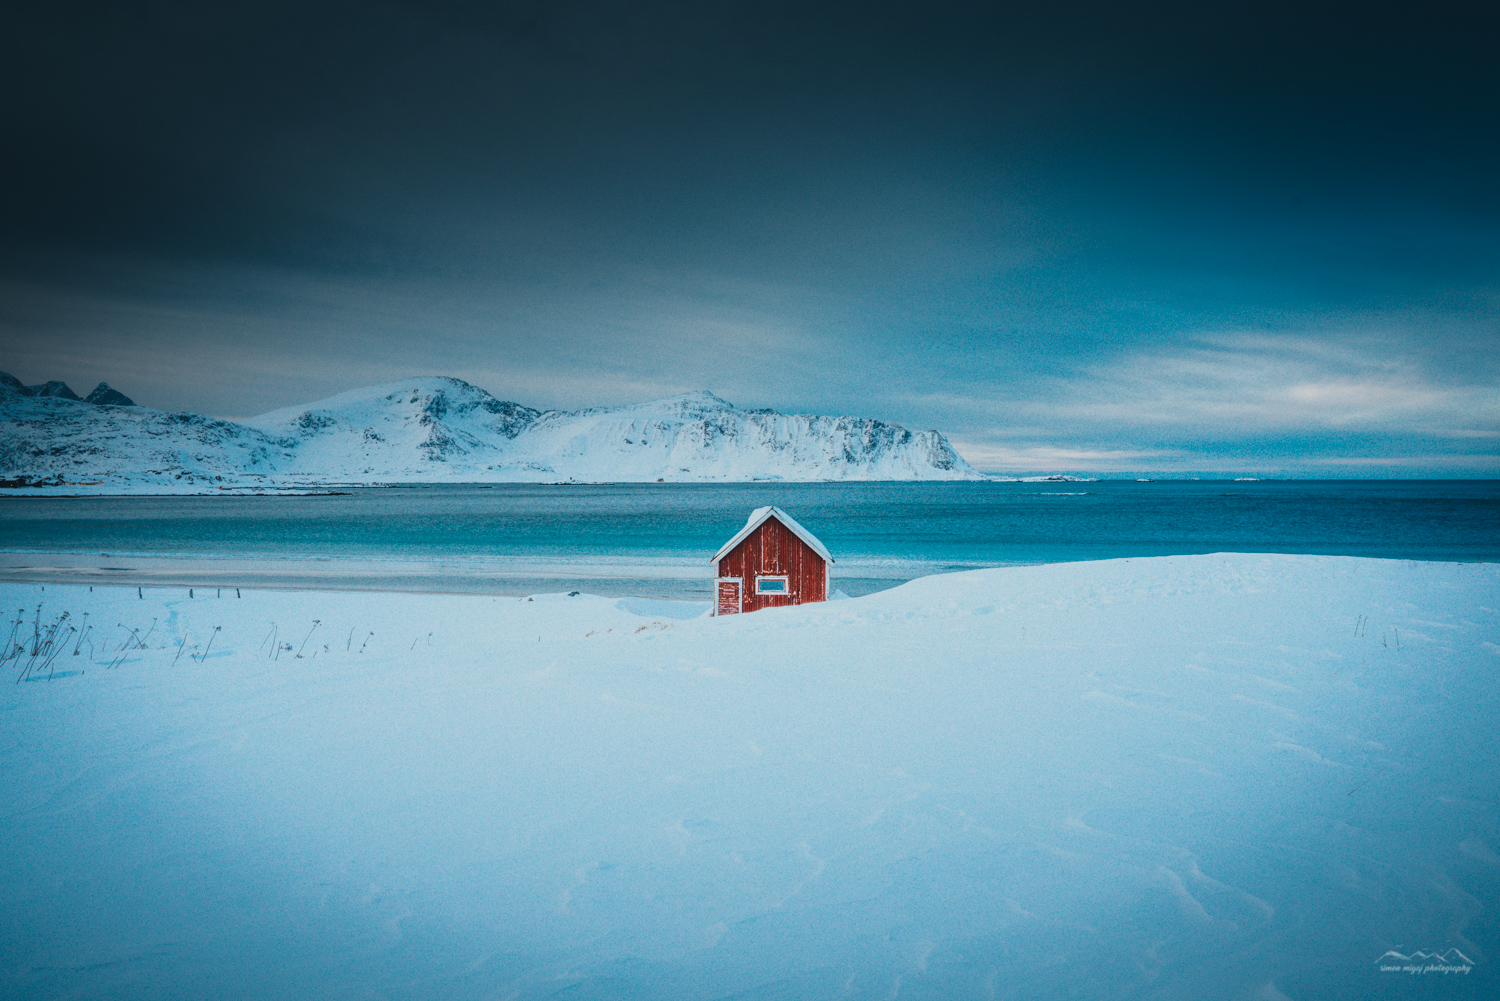 Travel photography in Senja, Norway